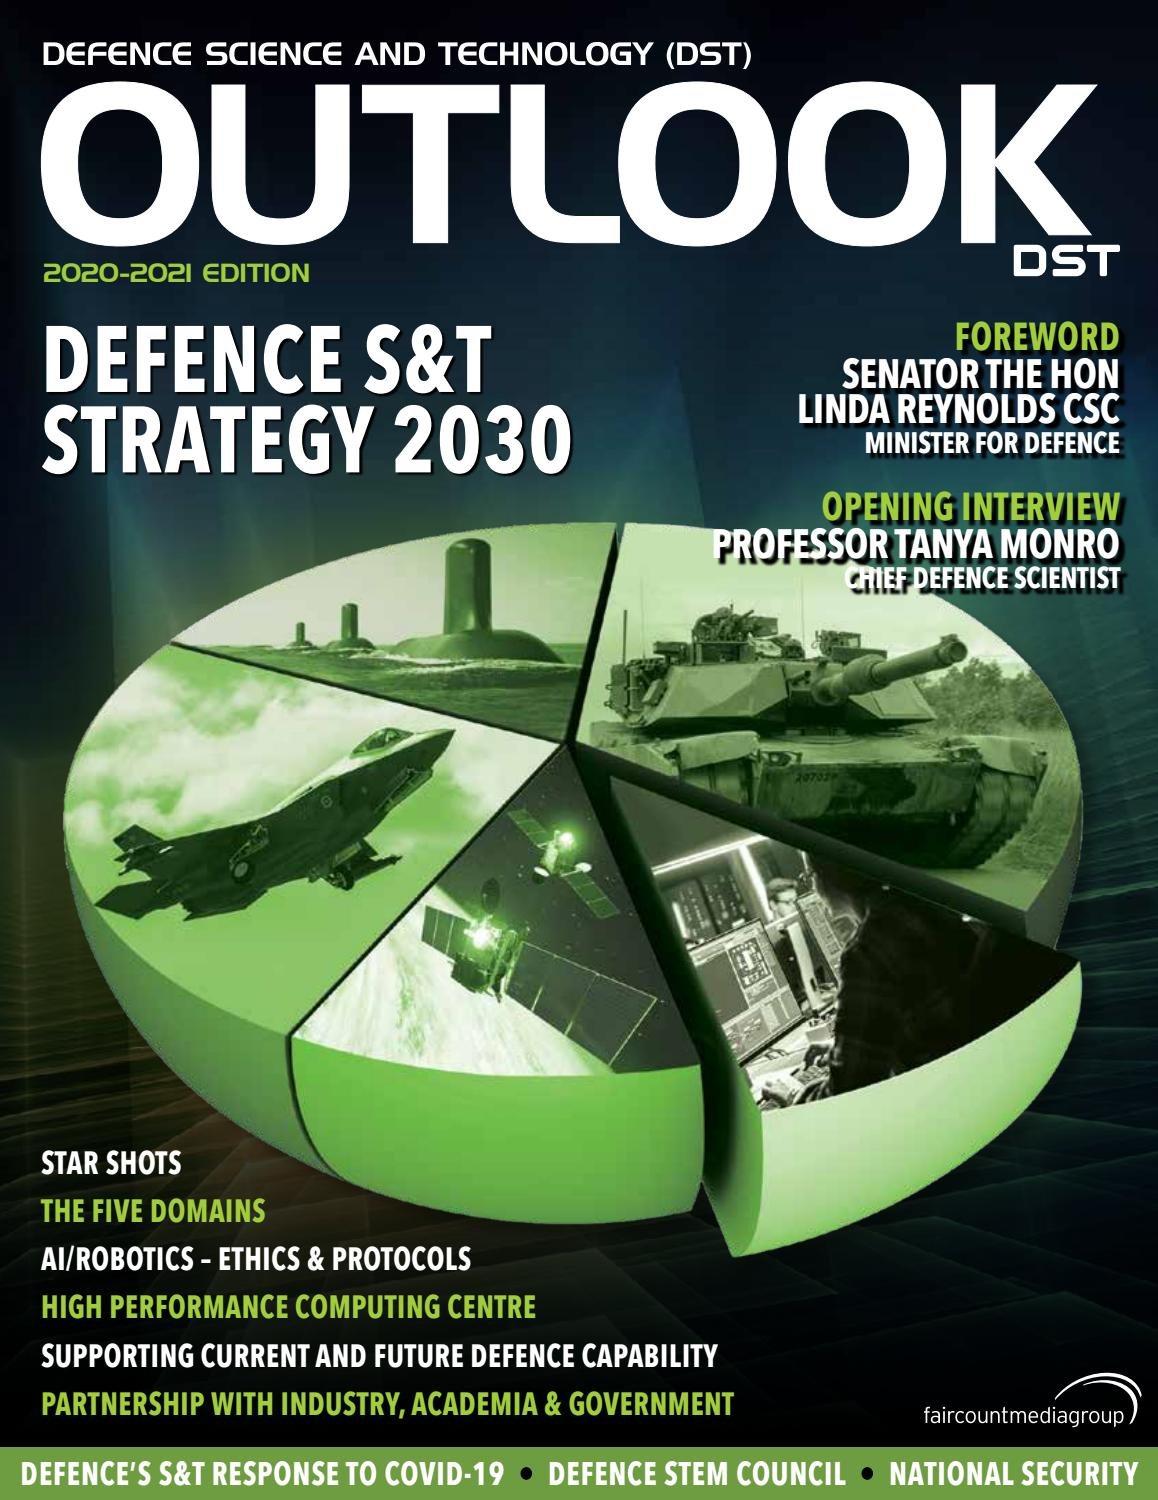 Defence Science And Technology (Dst) Outlook 2020-2021 in 2021 Wisconsin Rut Predictions